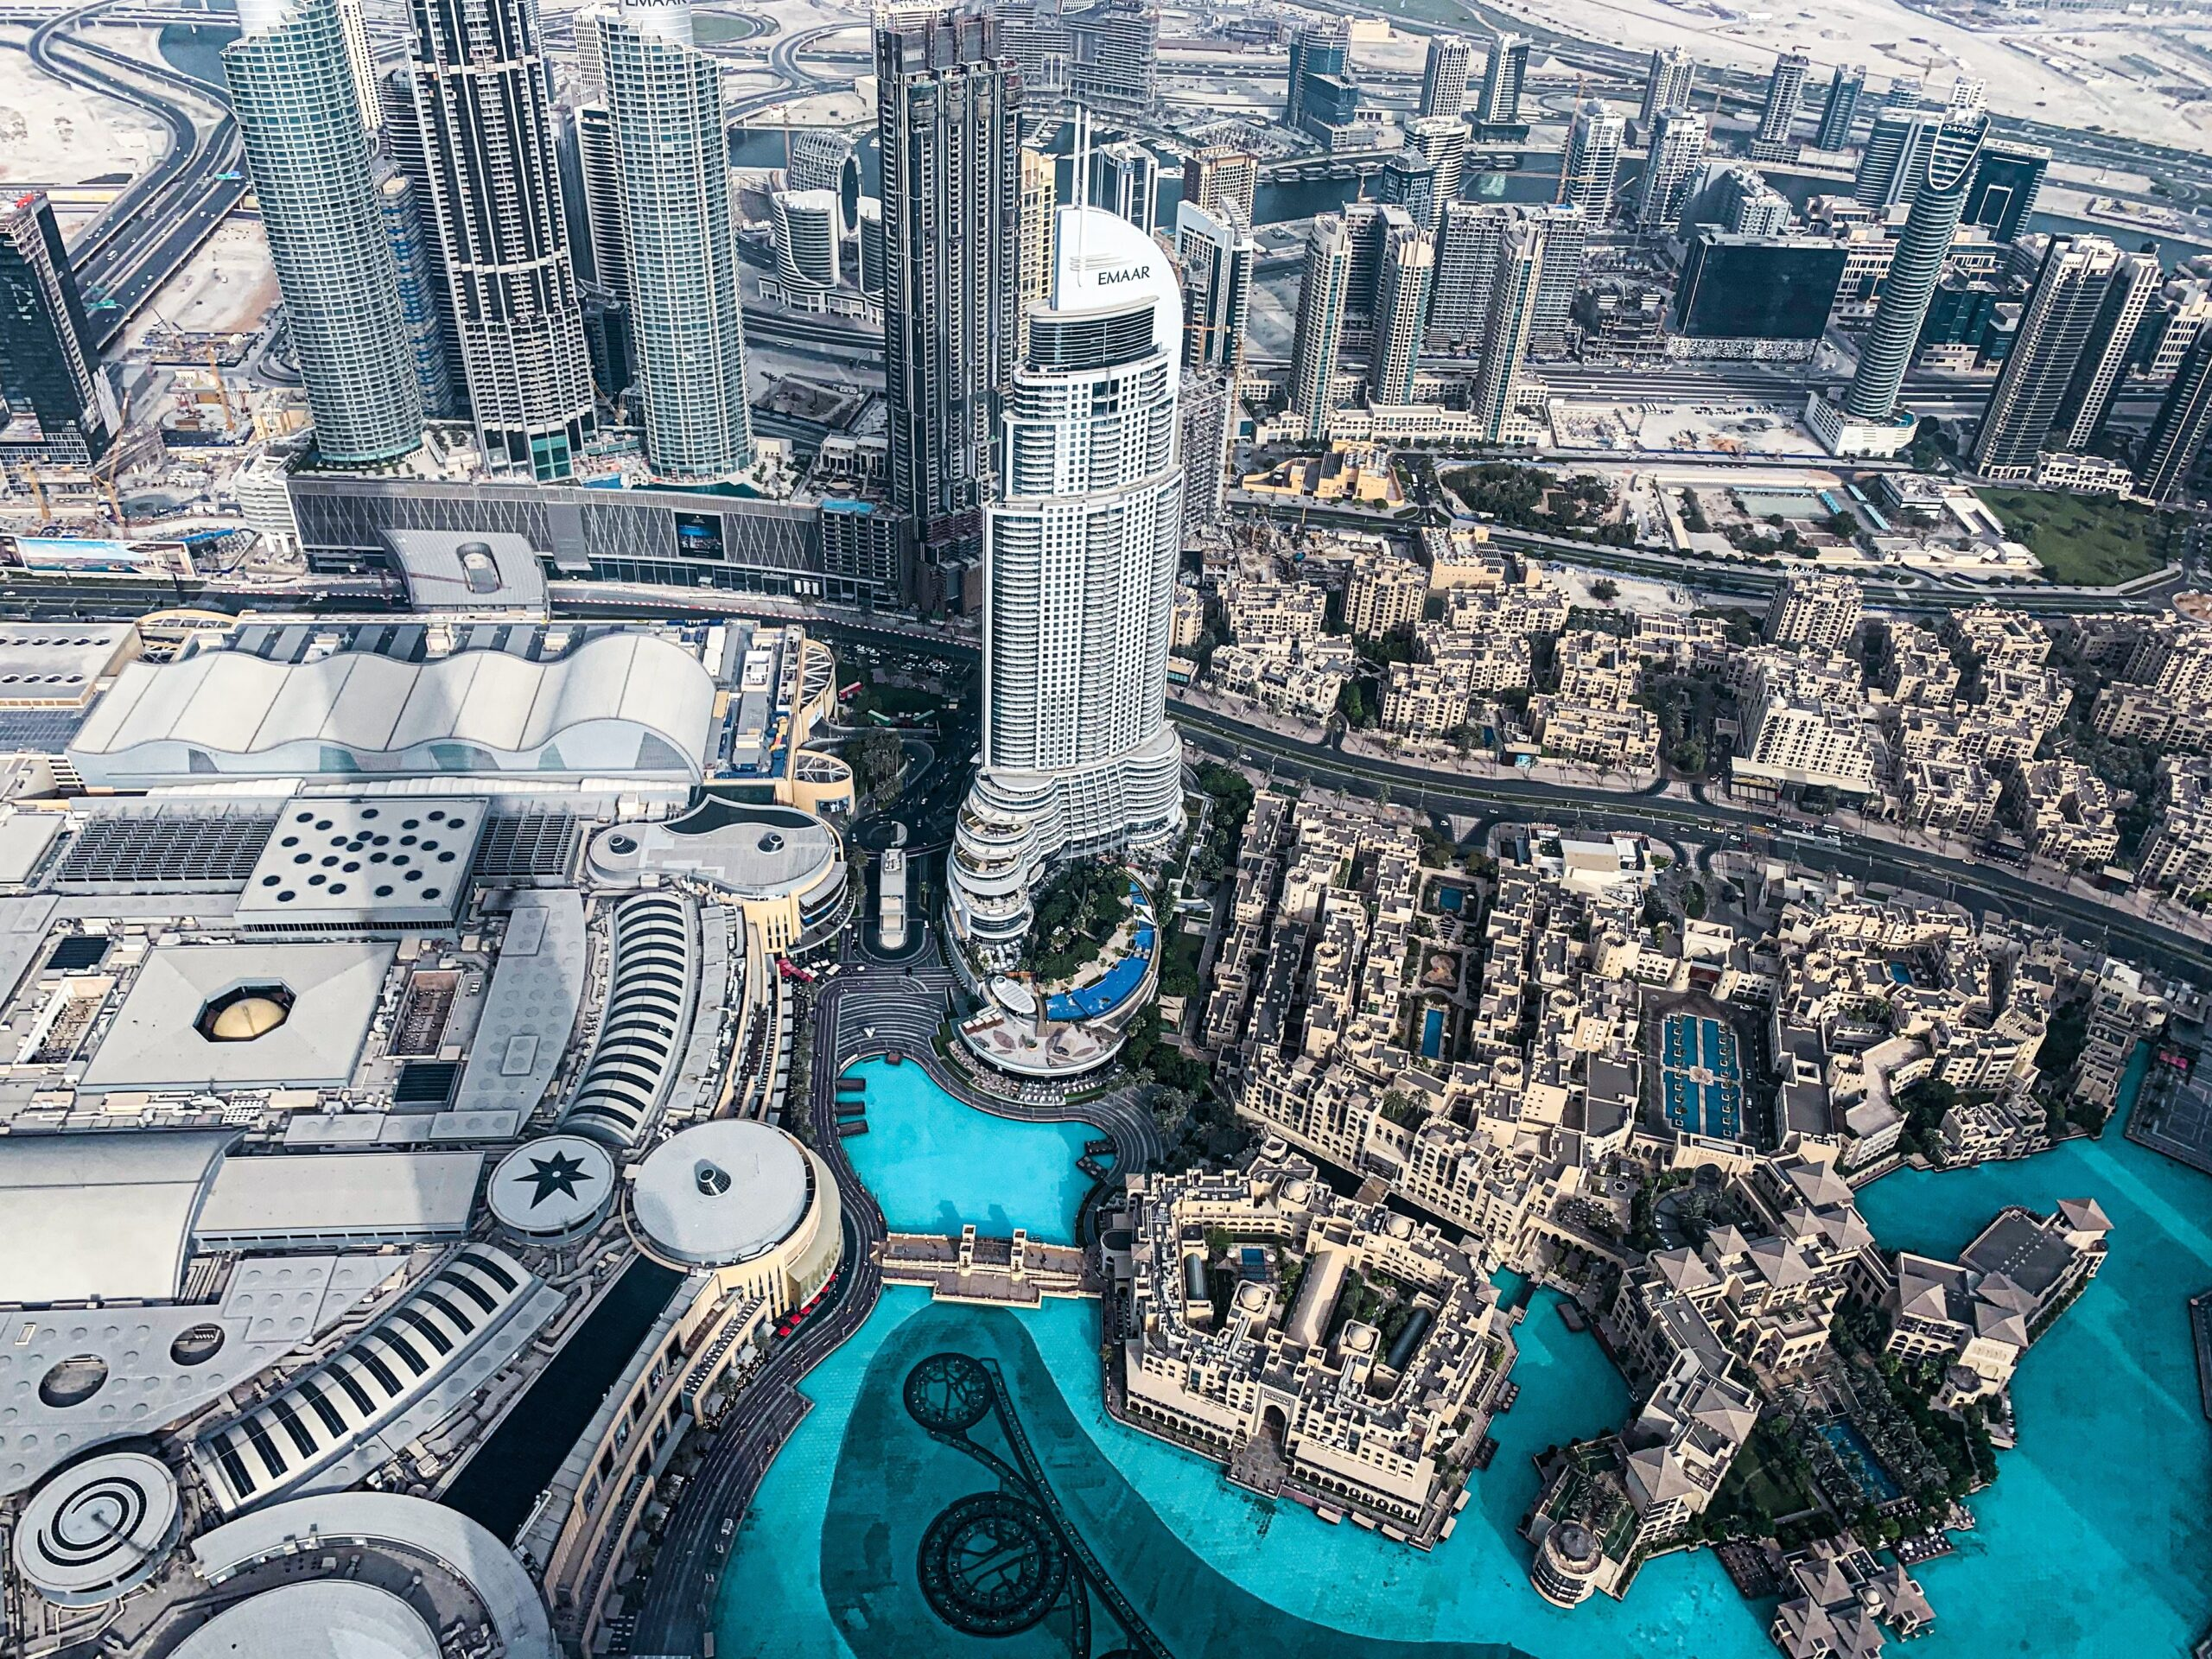 From the top of Burj Khalifa